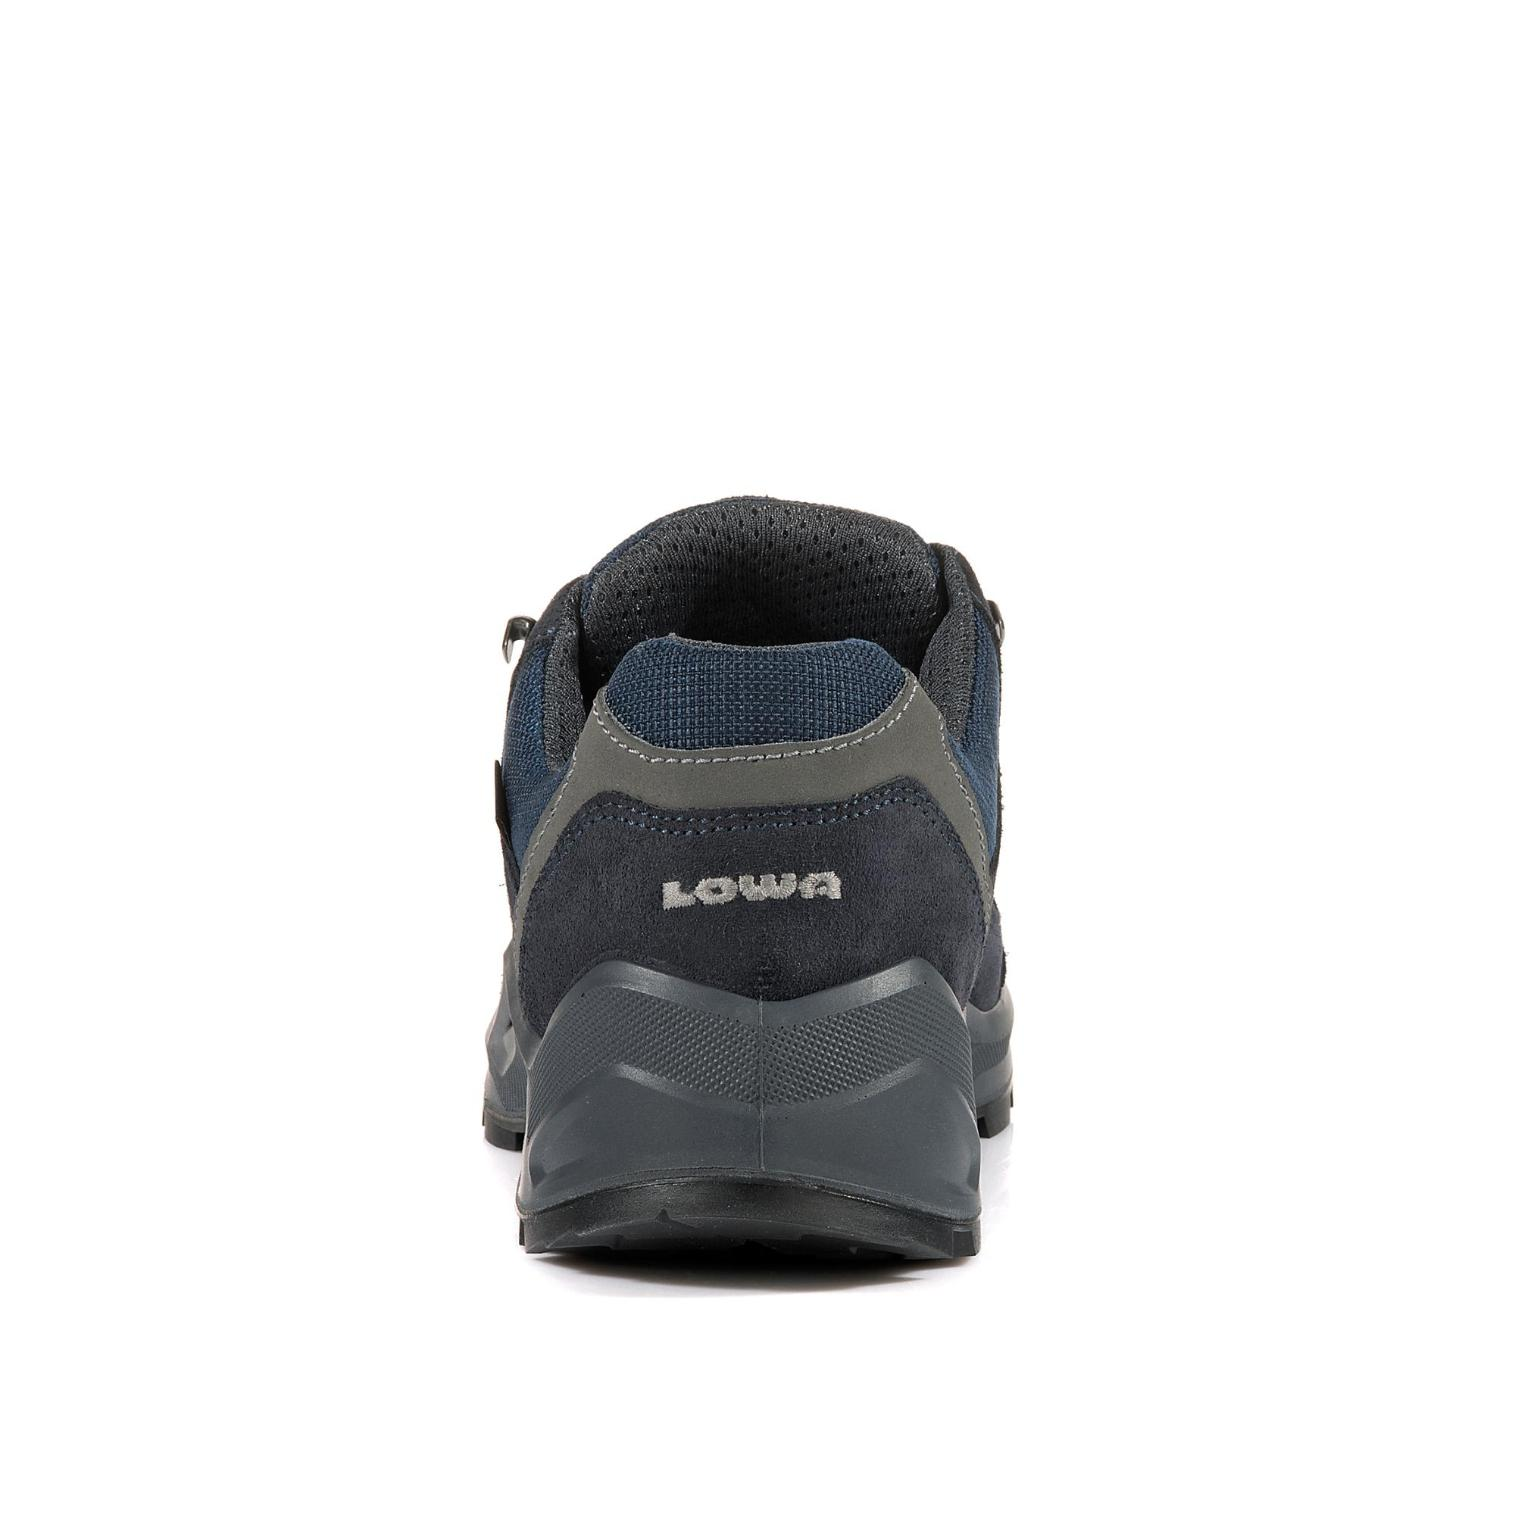 Lowa Terrios GORE TEX Outdoorschuh in Farbe blau